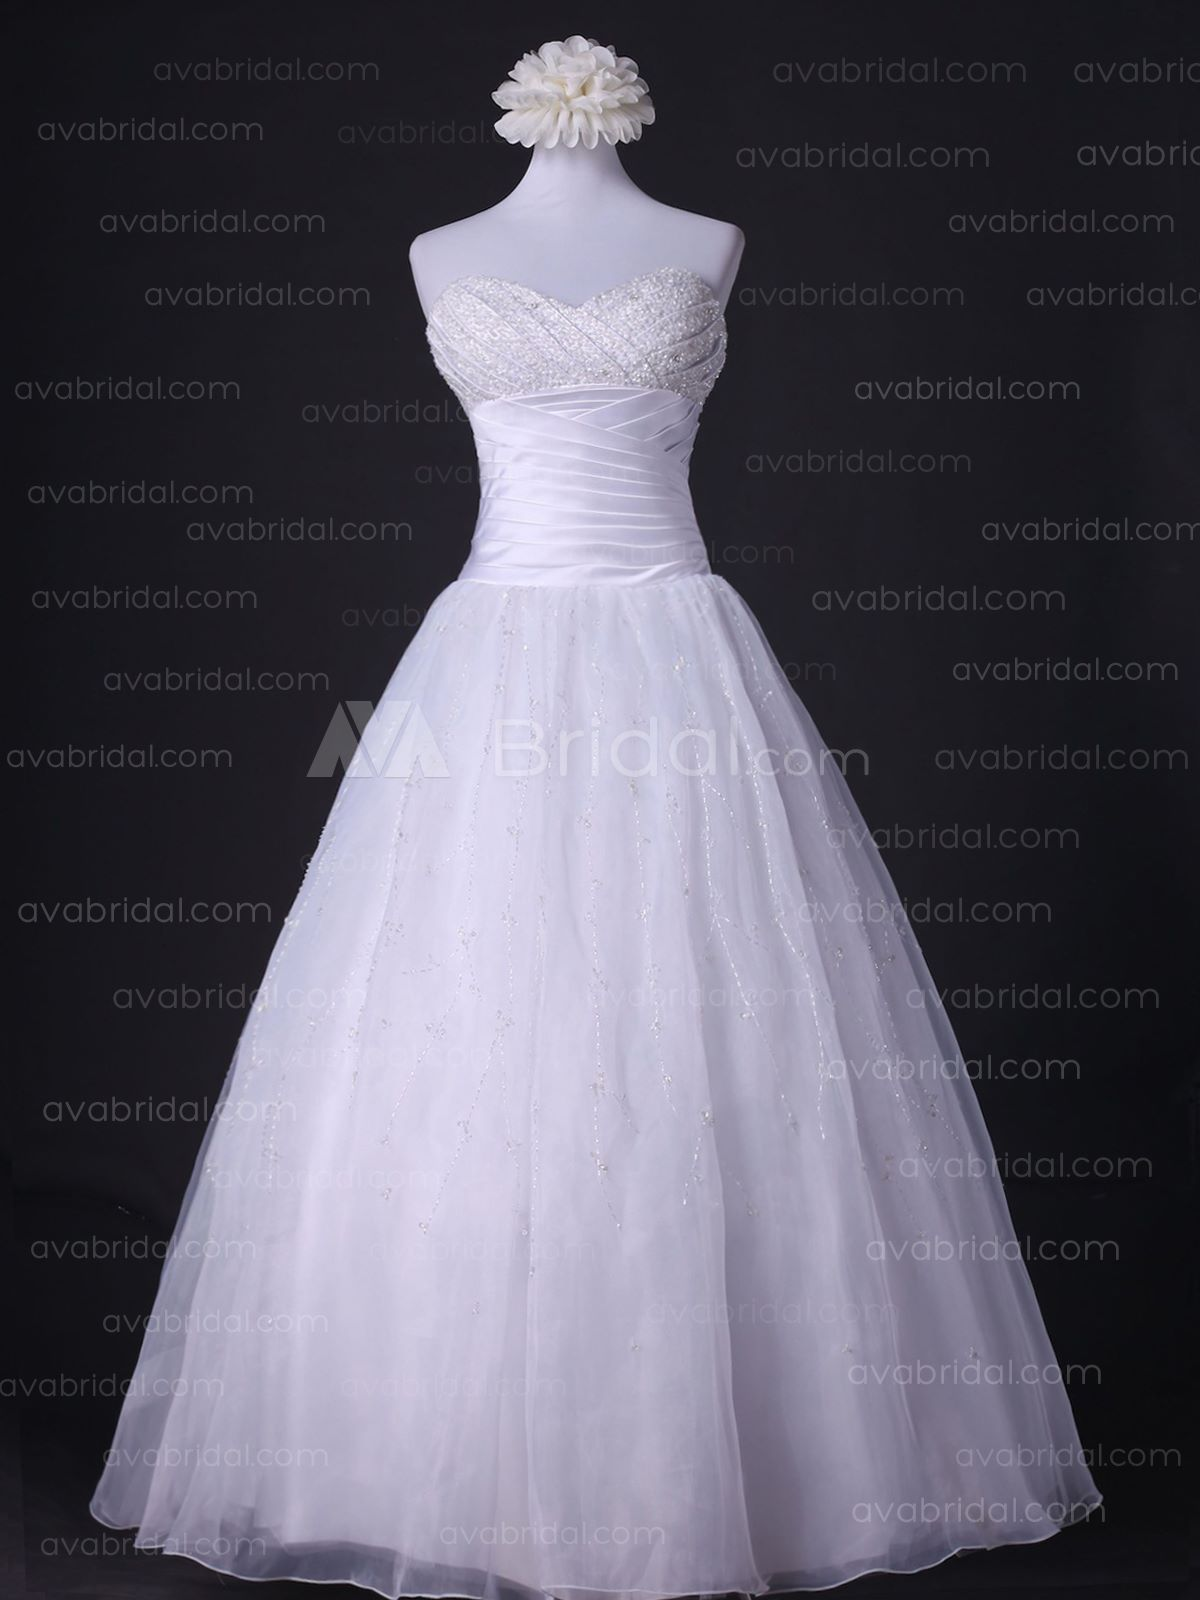 Princess Wedding Dress - Kelley- Front